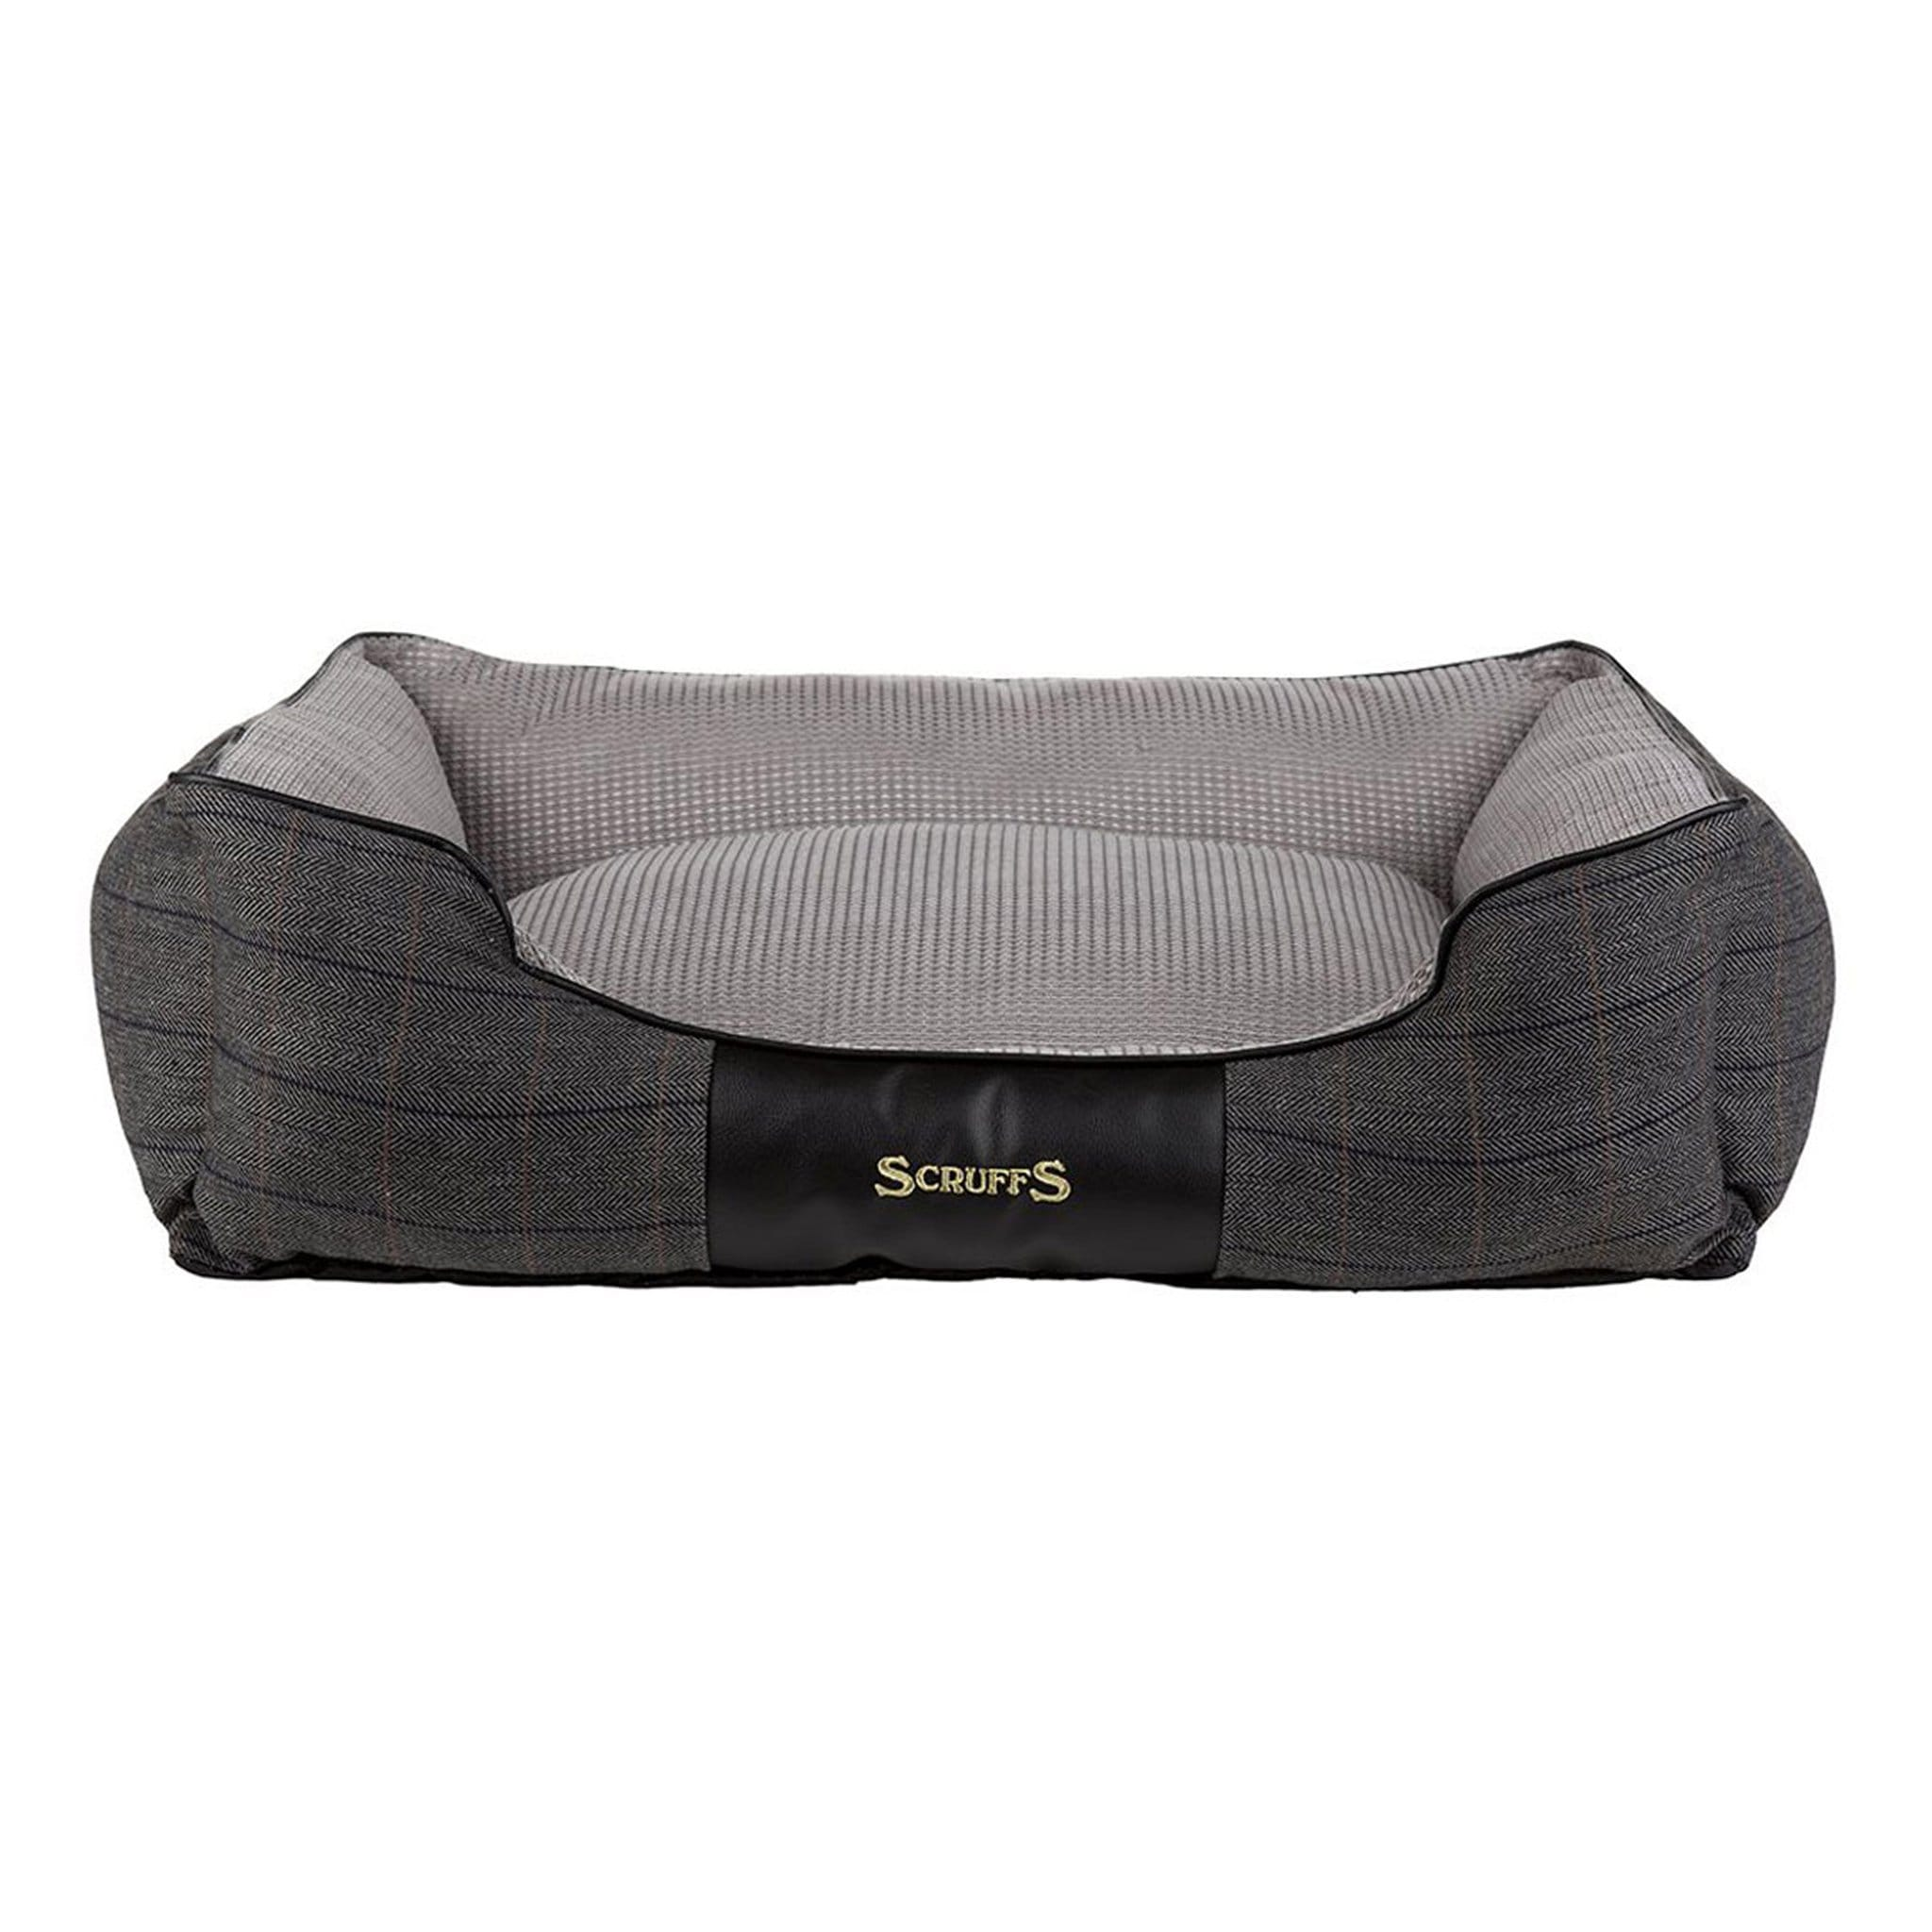 Scruffs Windsor Box Dog Bed 18152 Charcoal Grey